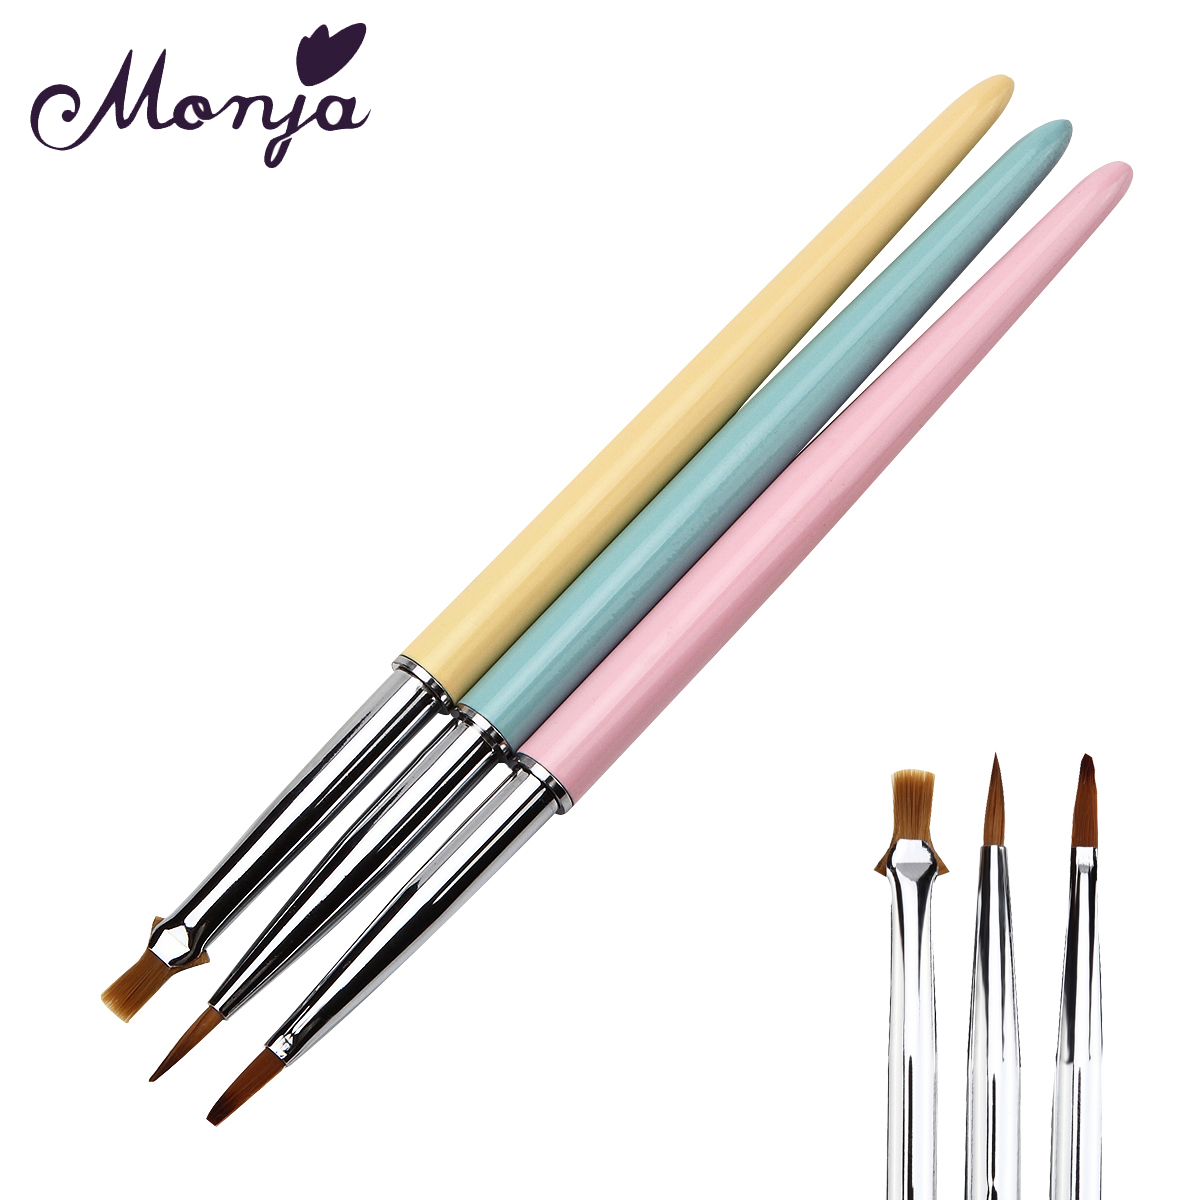 Online coloring with paint brush - 3 Style Set Nail Art Painting Brush Multipurpose Gel Polish Tips 3d Diy Design Drawing Coloring Dotting Pen Manicure Brushes Kit